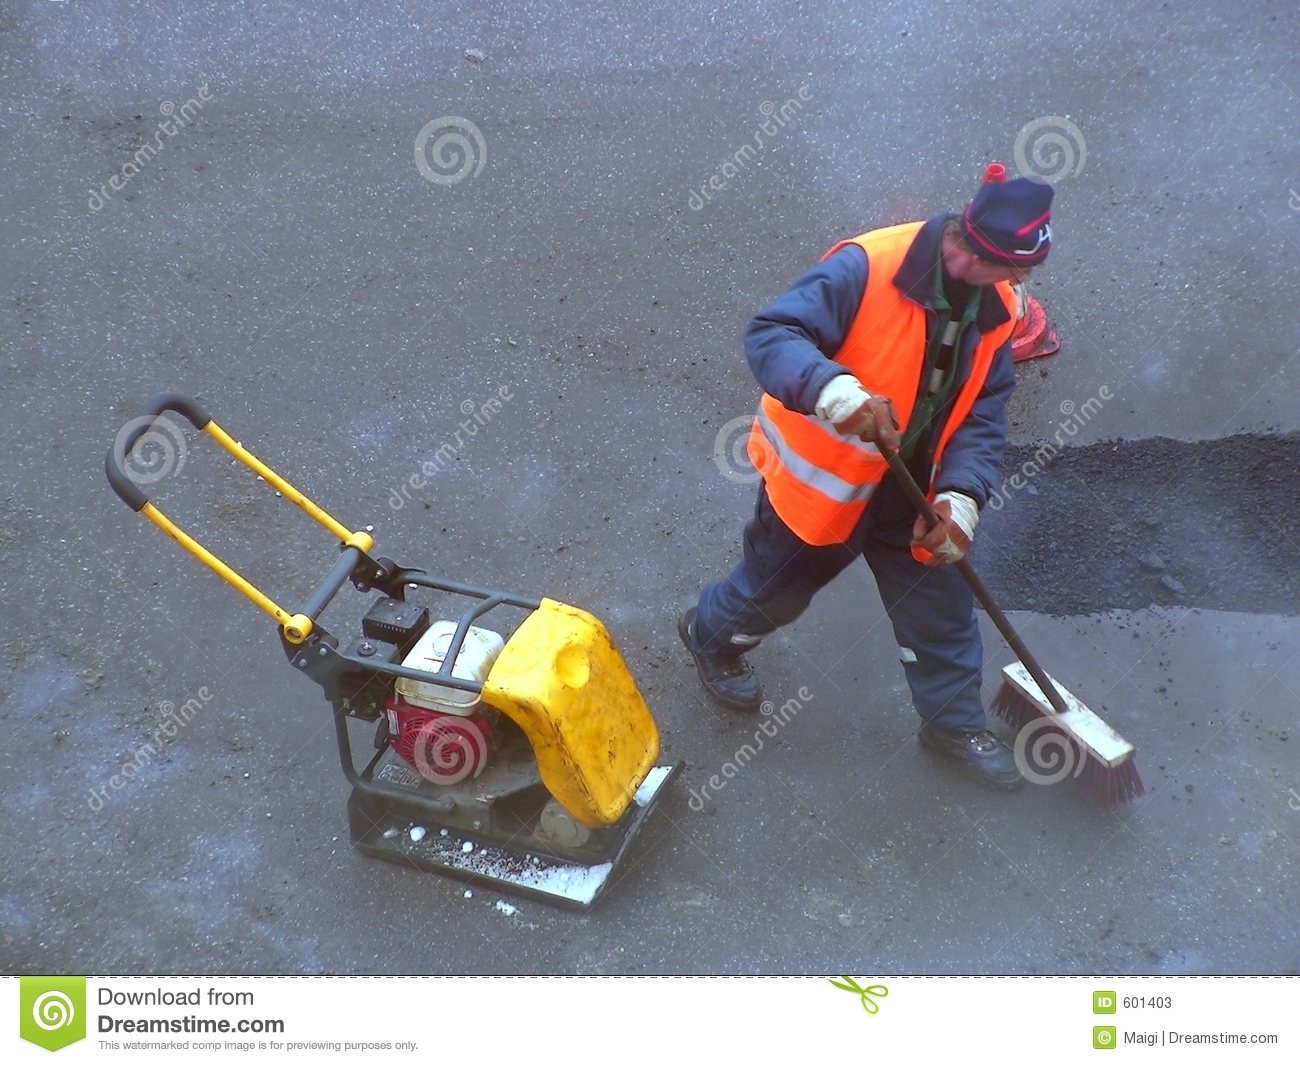 Cleaning the road